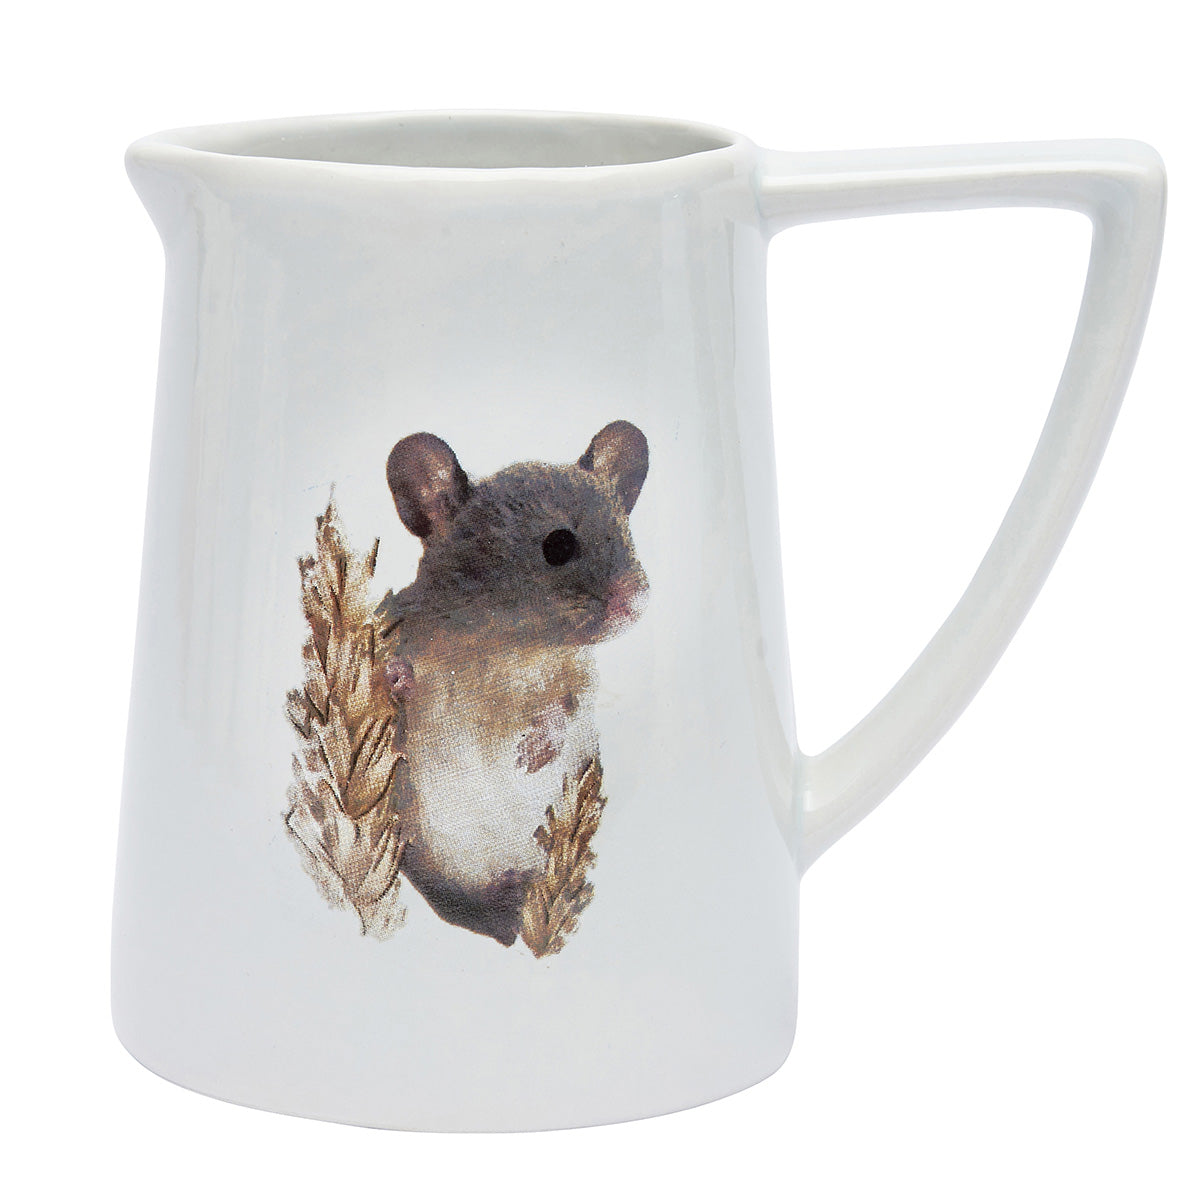 Field Mouse Jug Vase - Small